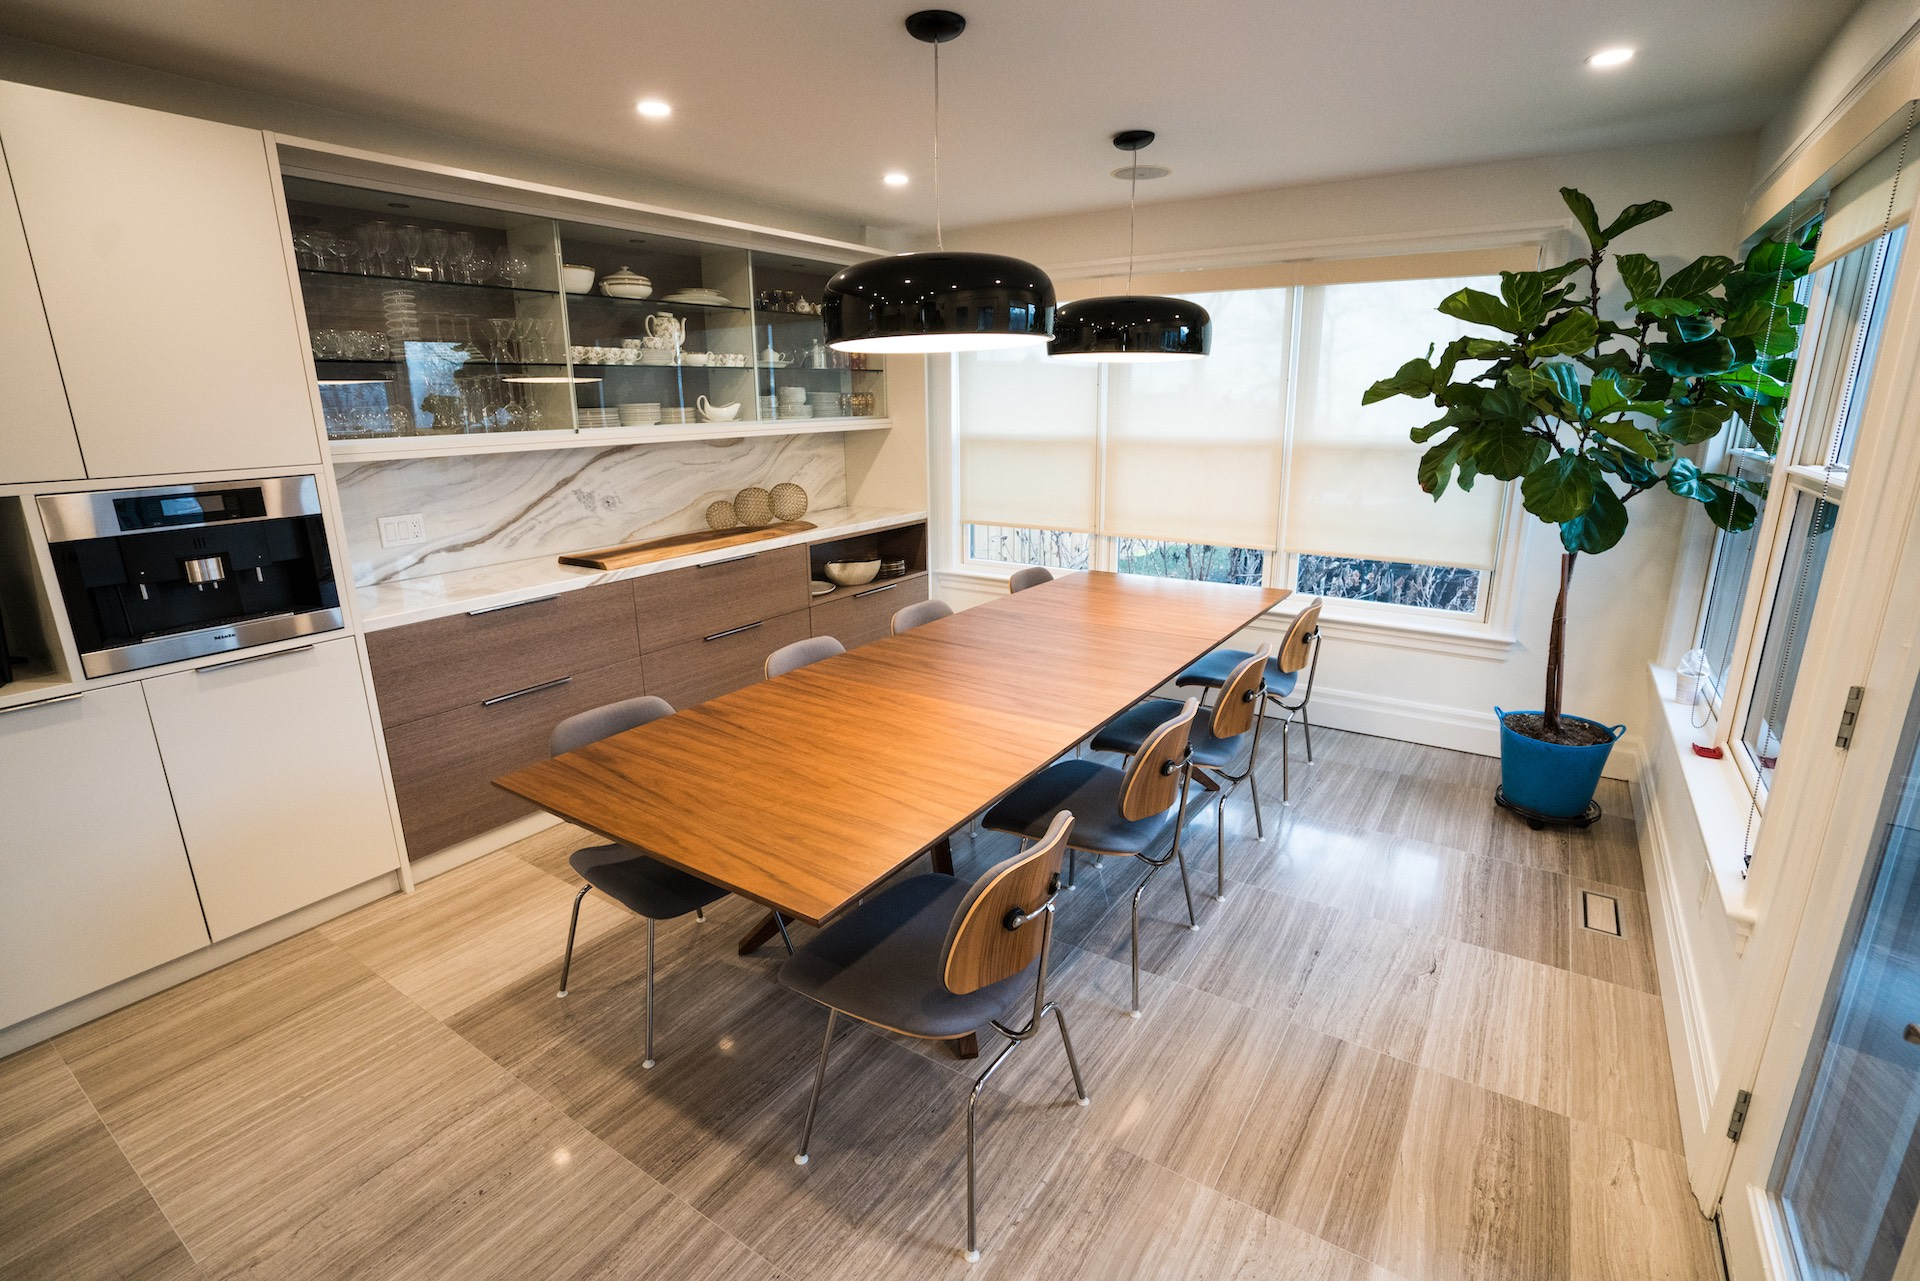 Kitchen table with wood chairs